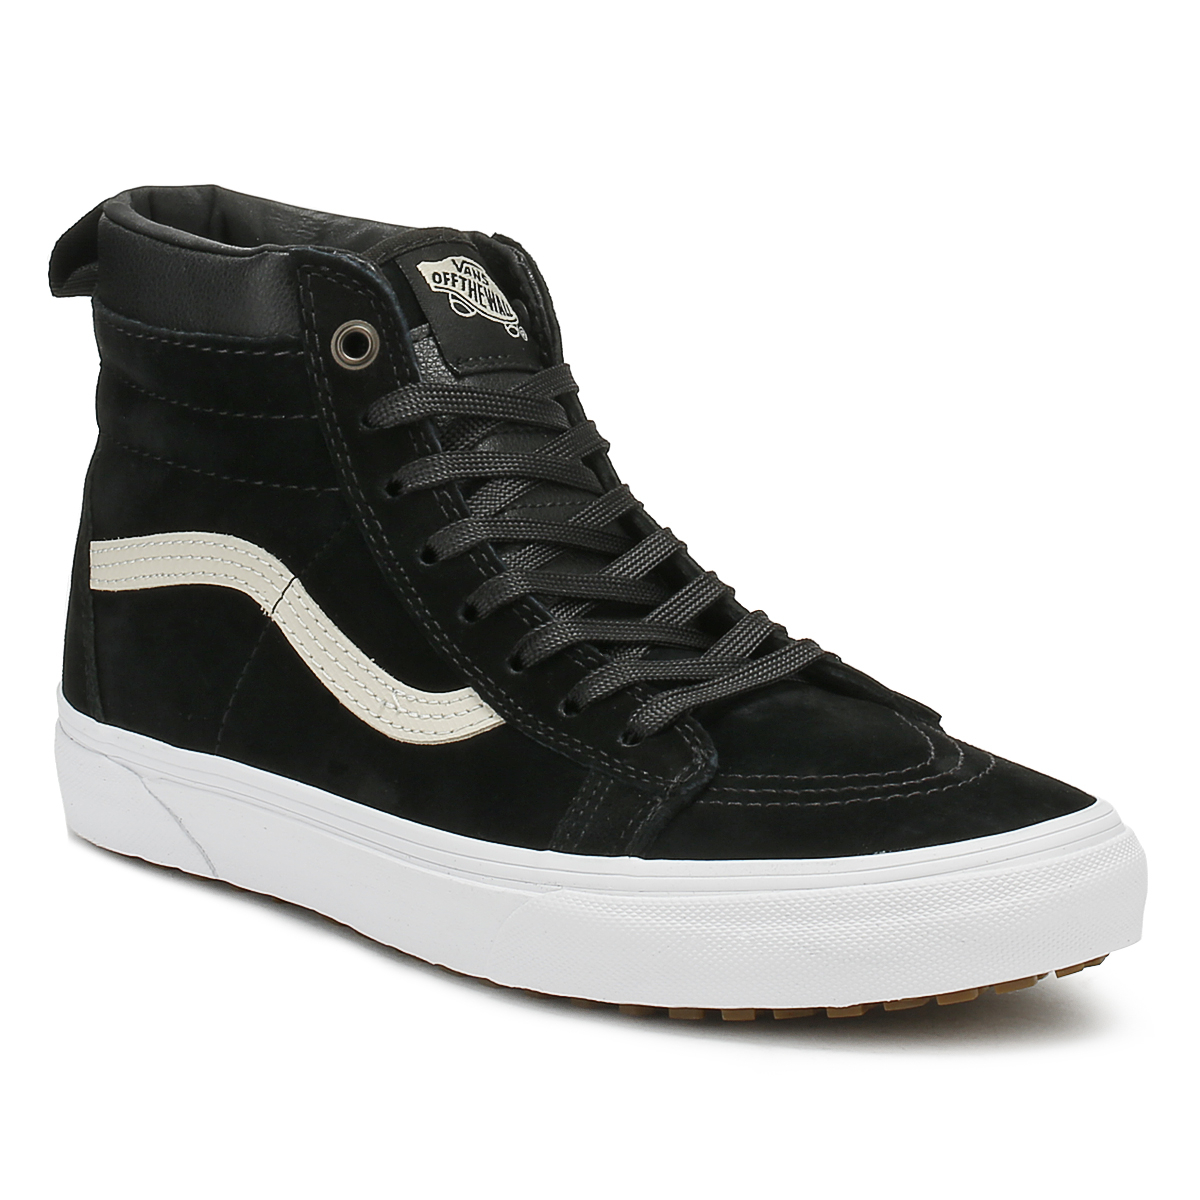 44be44ddeb9f Vans Mens Black Night SK8-Hi MTE Trainers Leather Lace Up Skate Shoes High  Tops